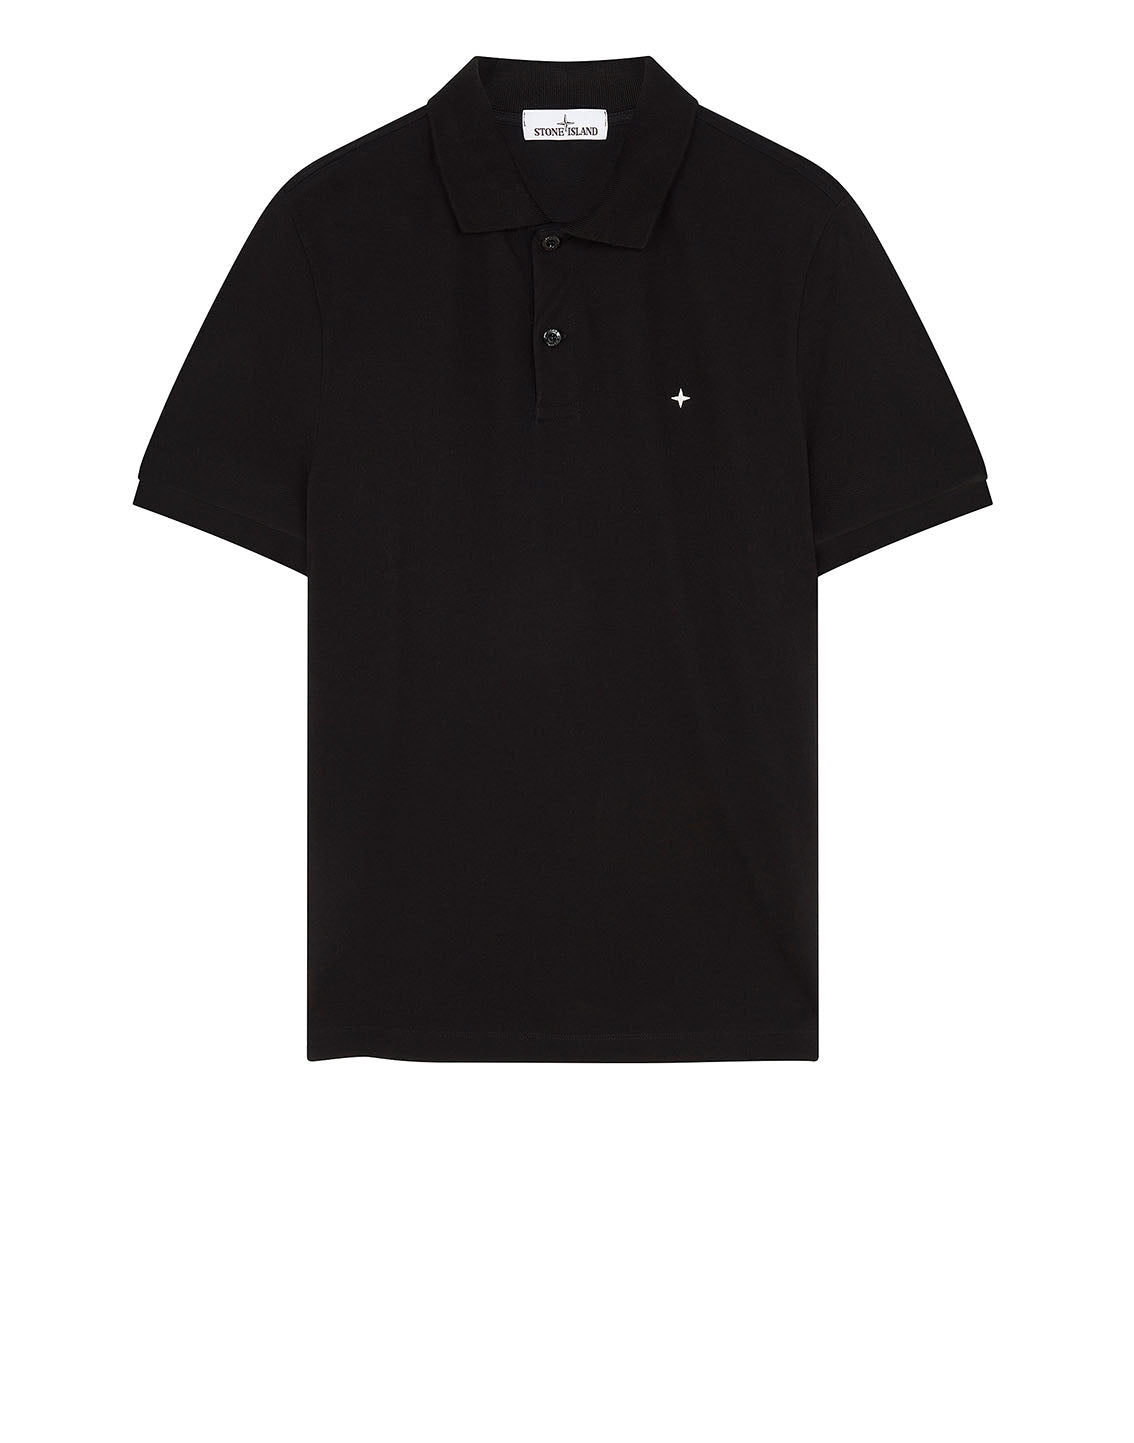 21718 Short Sleeve polo shirt in Black